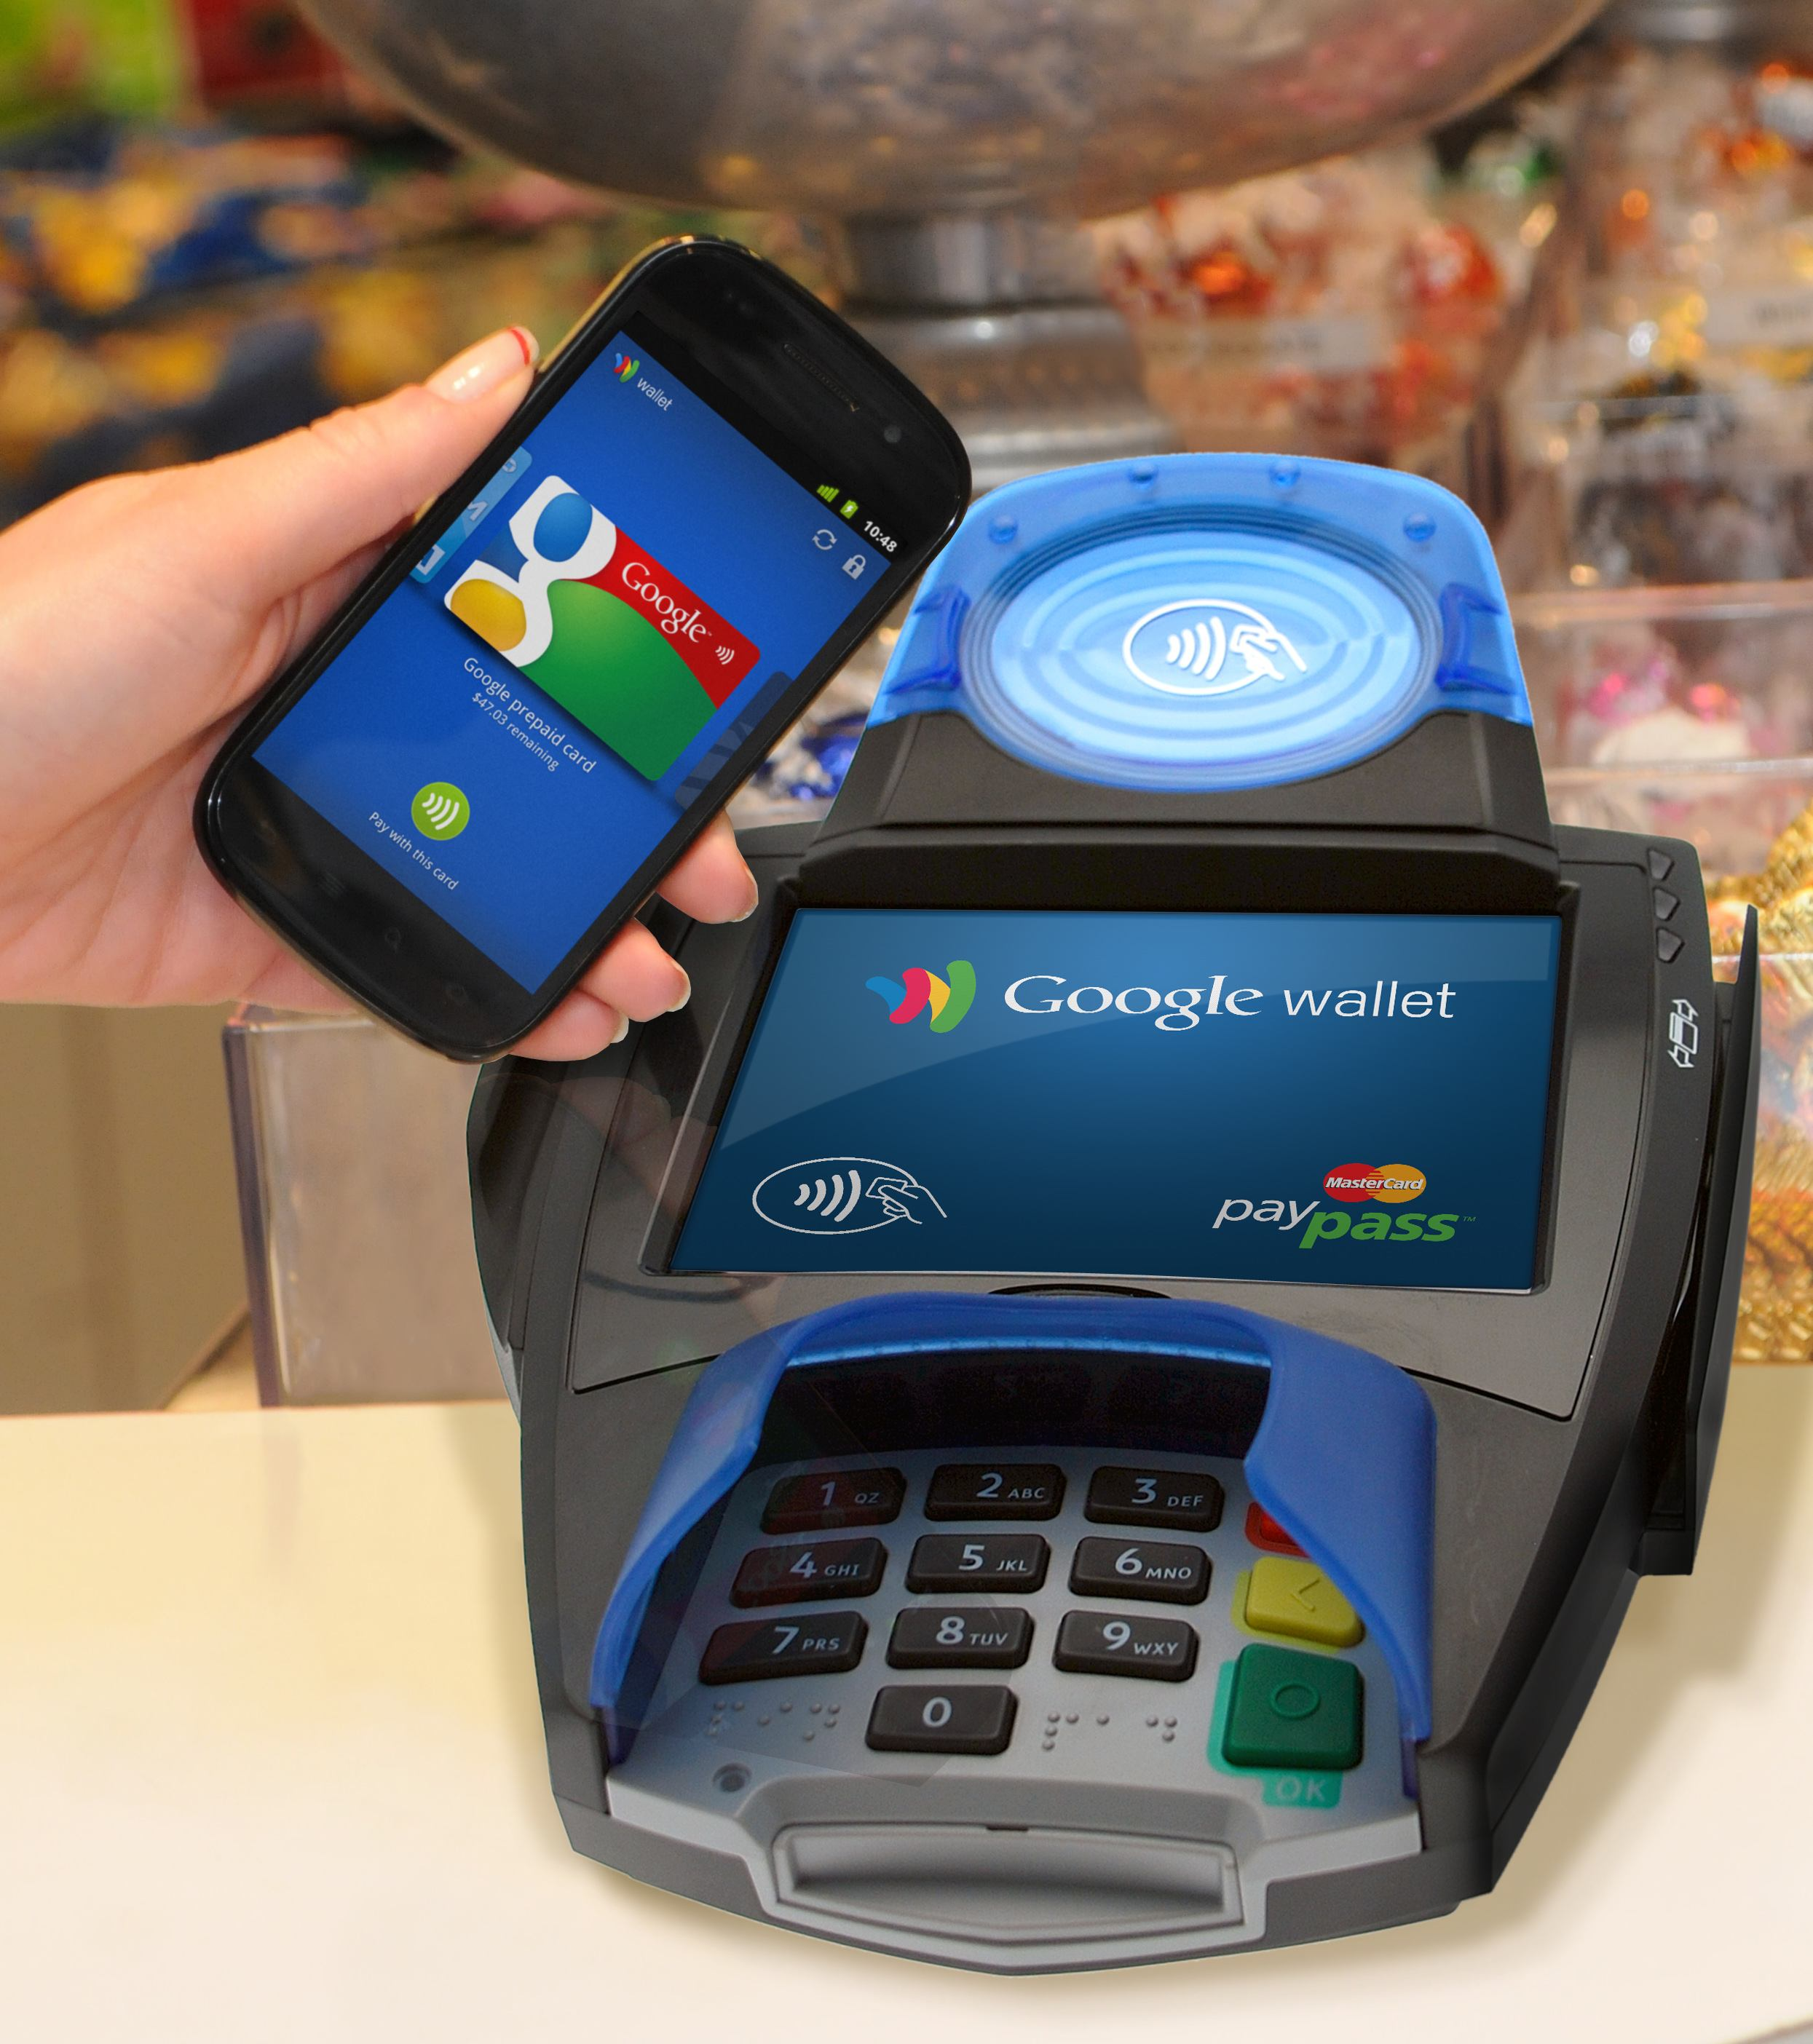 Google Wallet Launches as Other Payment Networks Sign On